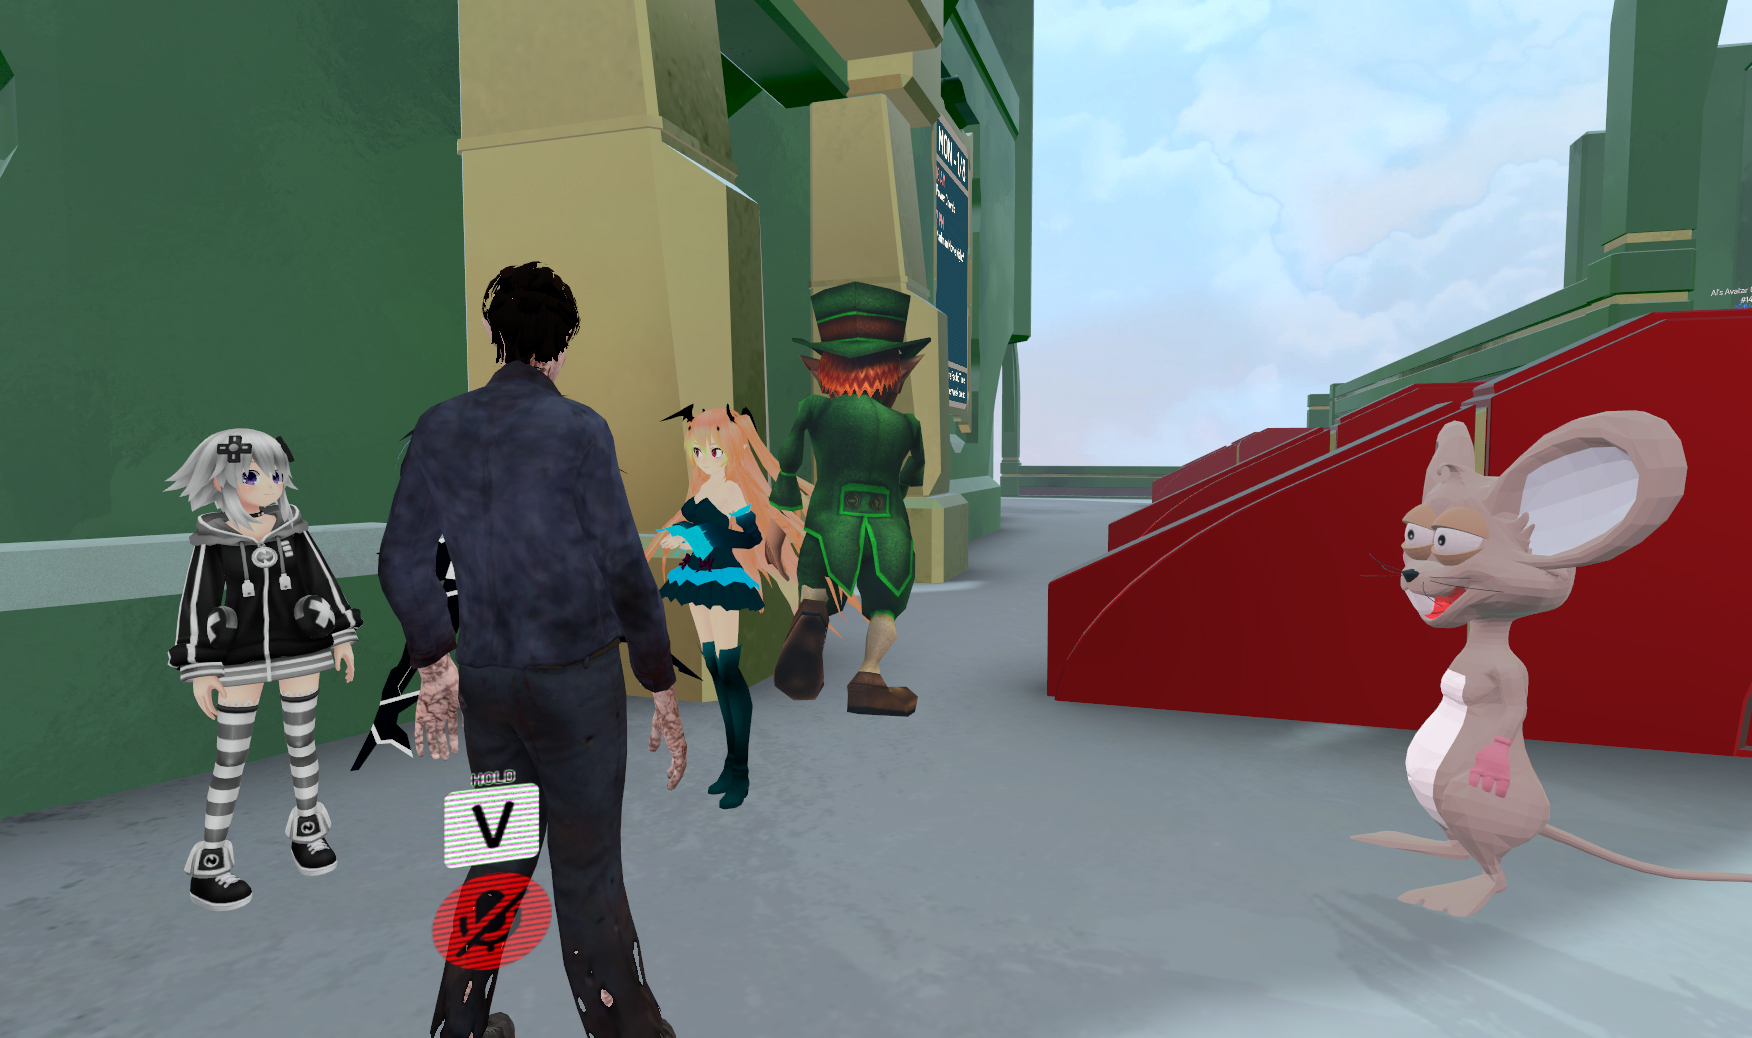 VRChat's surge in popularity has created a bizarre scene